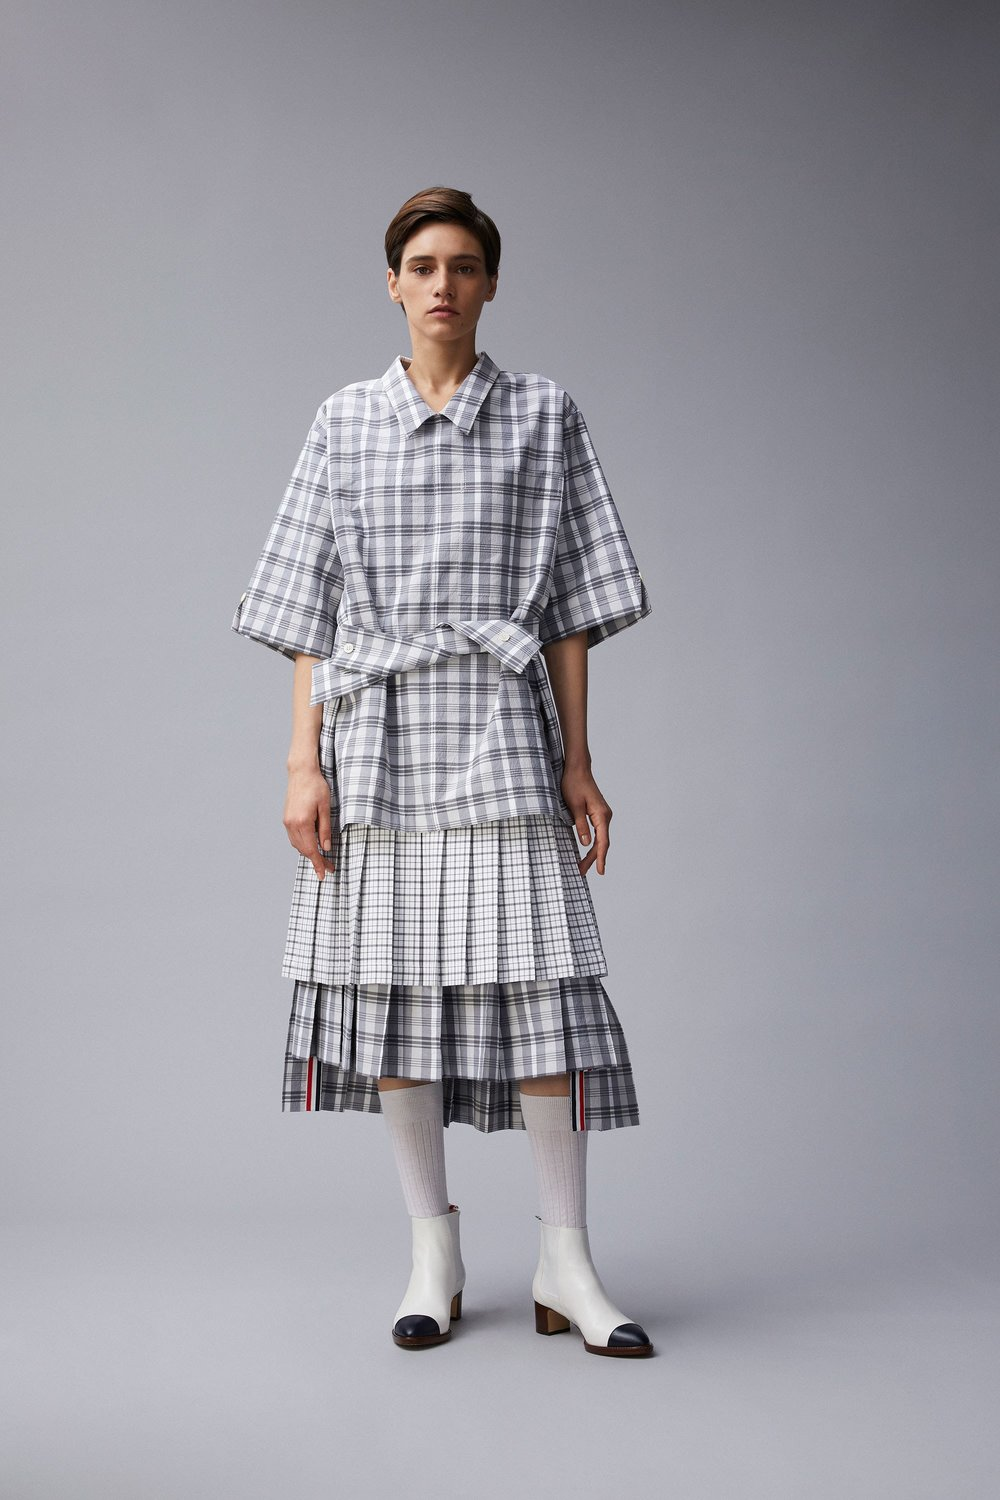 27-thom-browne-resort-2018.jpg